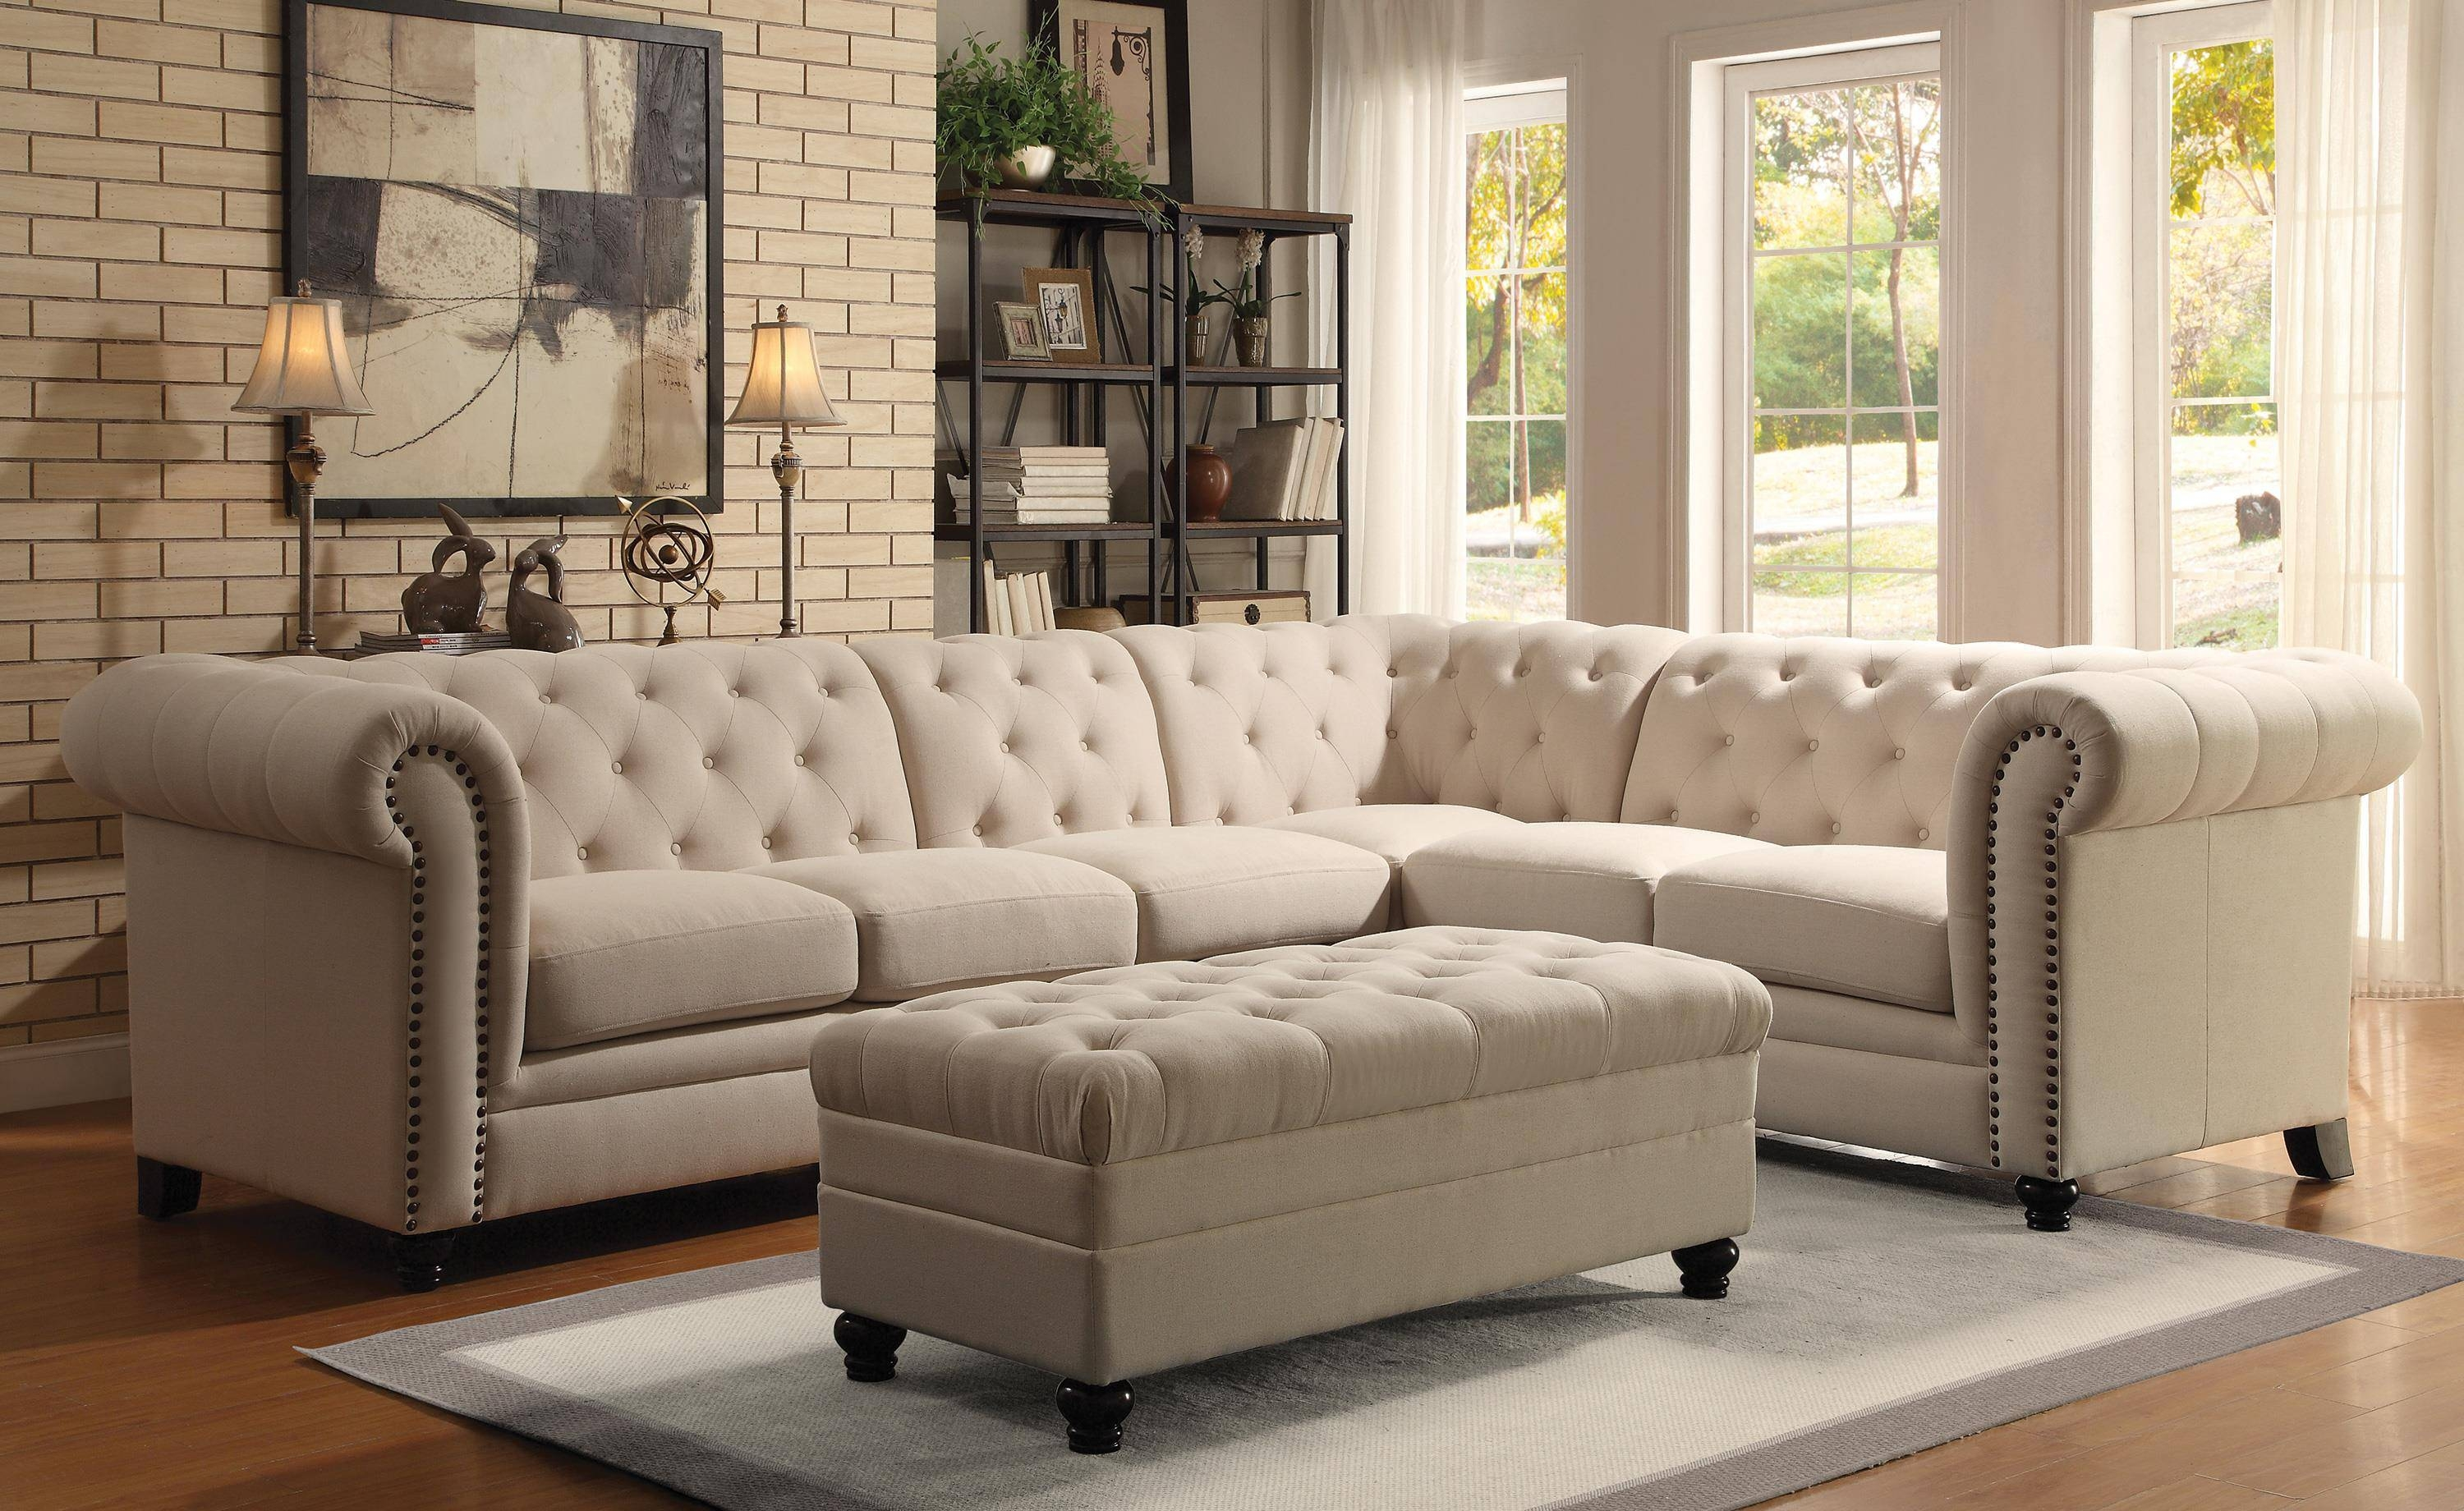 Sofas Center : Ashley Furniture Tuftedfa Leatherfaashley Sectional with Ashley Tufted Sofa (Image 27 of 30)